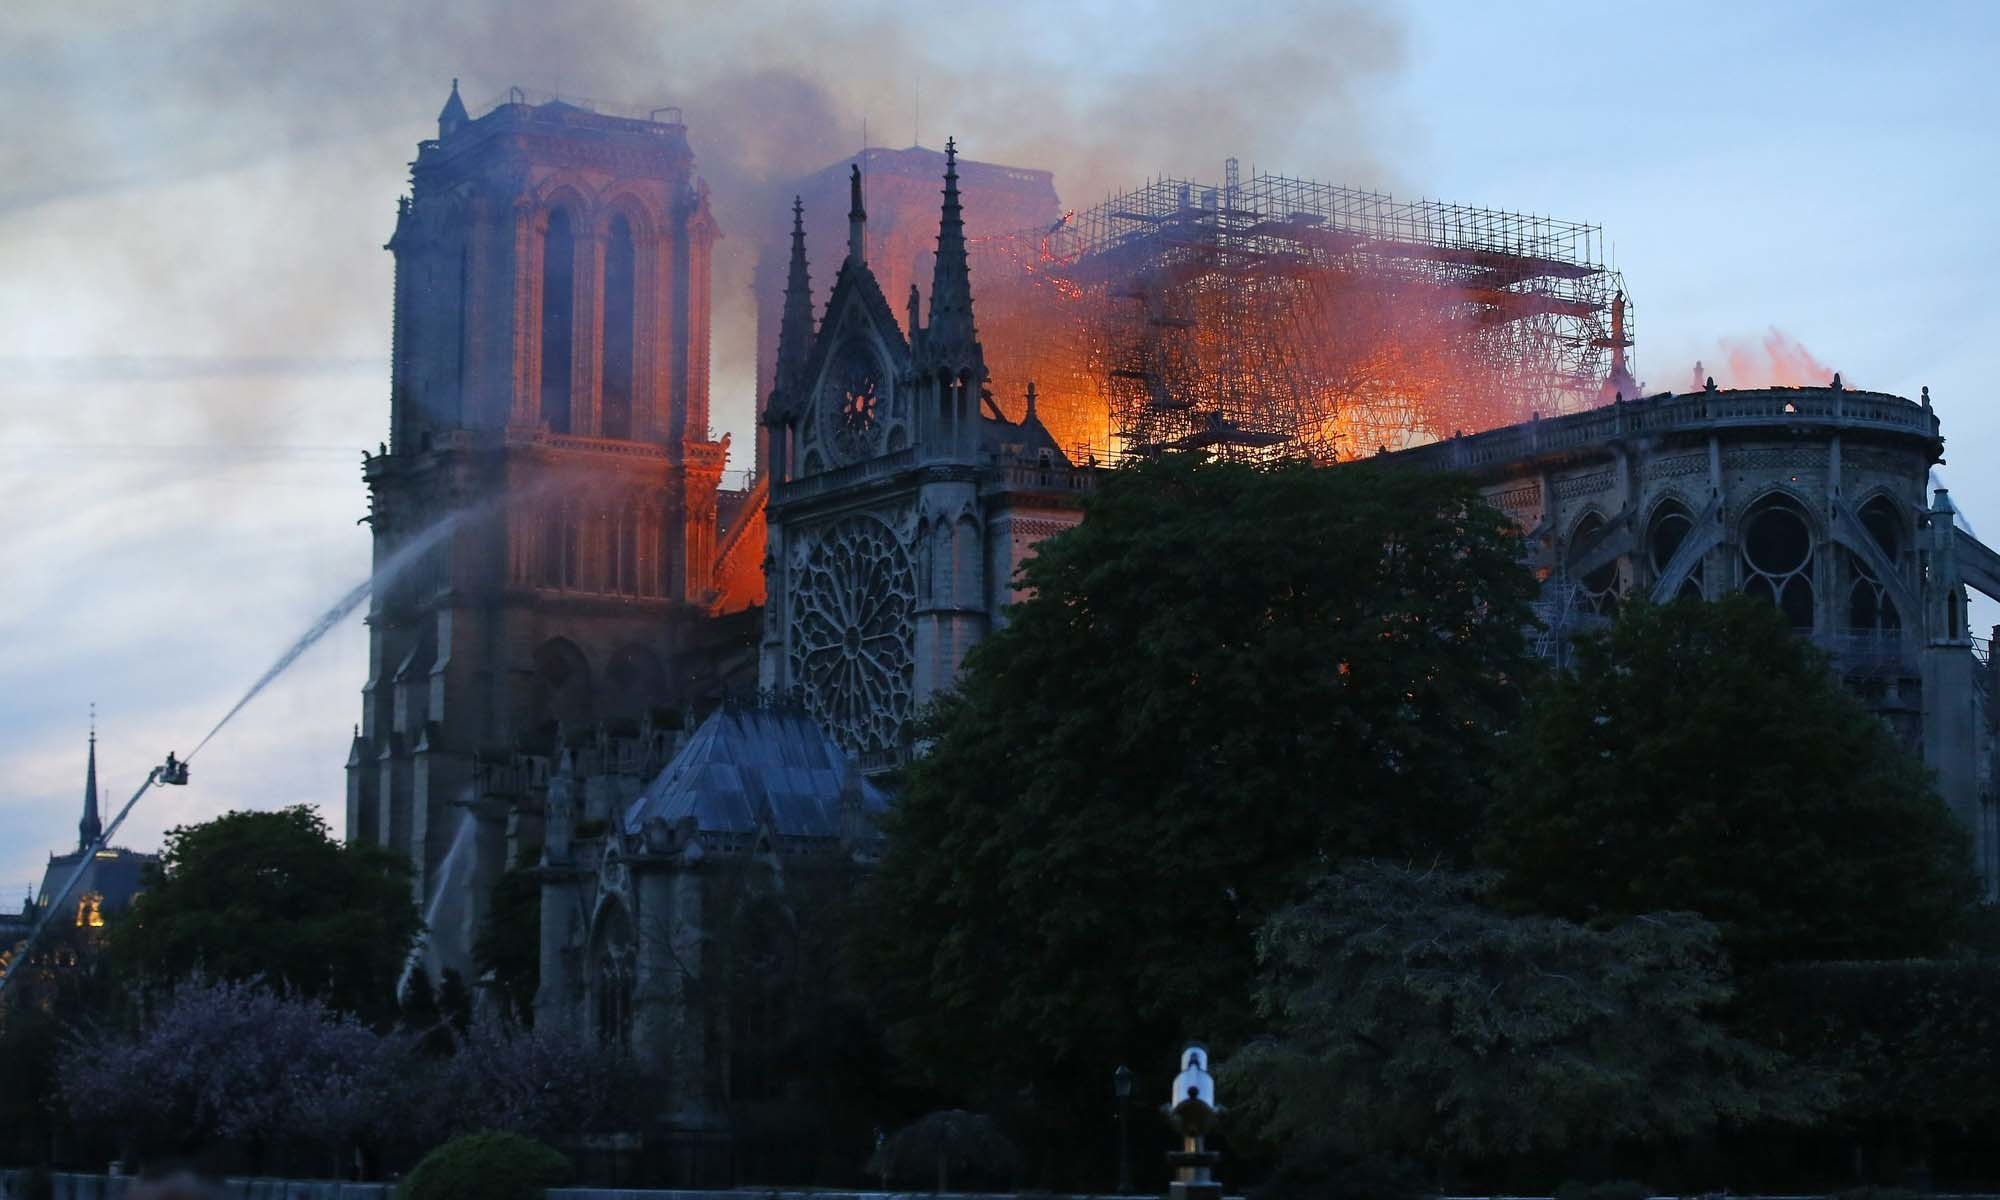 Notre-Dame fire under control after 9 hours, Macron vows 'cathedral will be reborn'